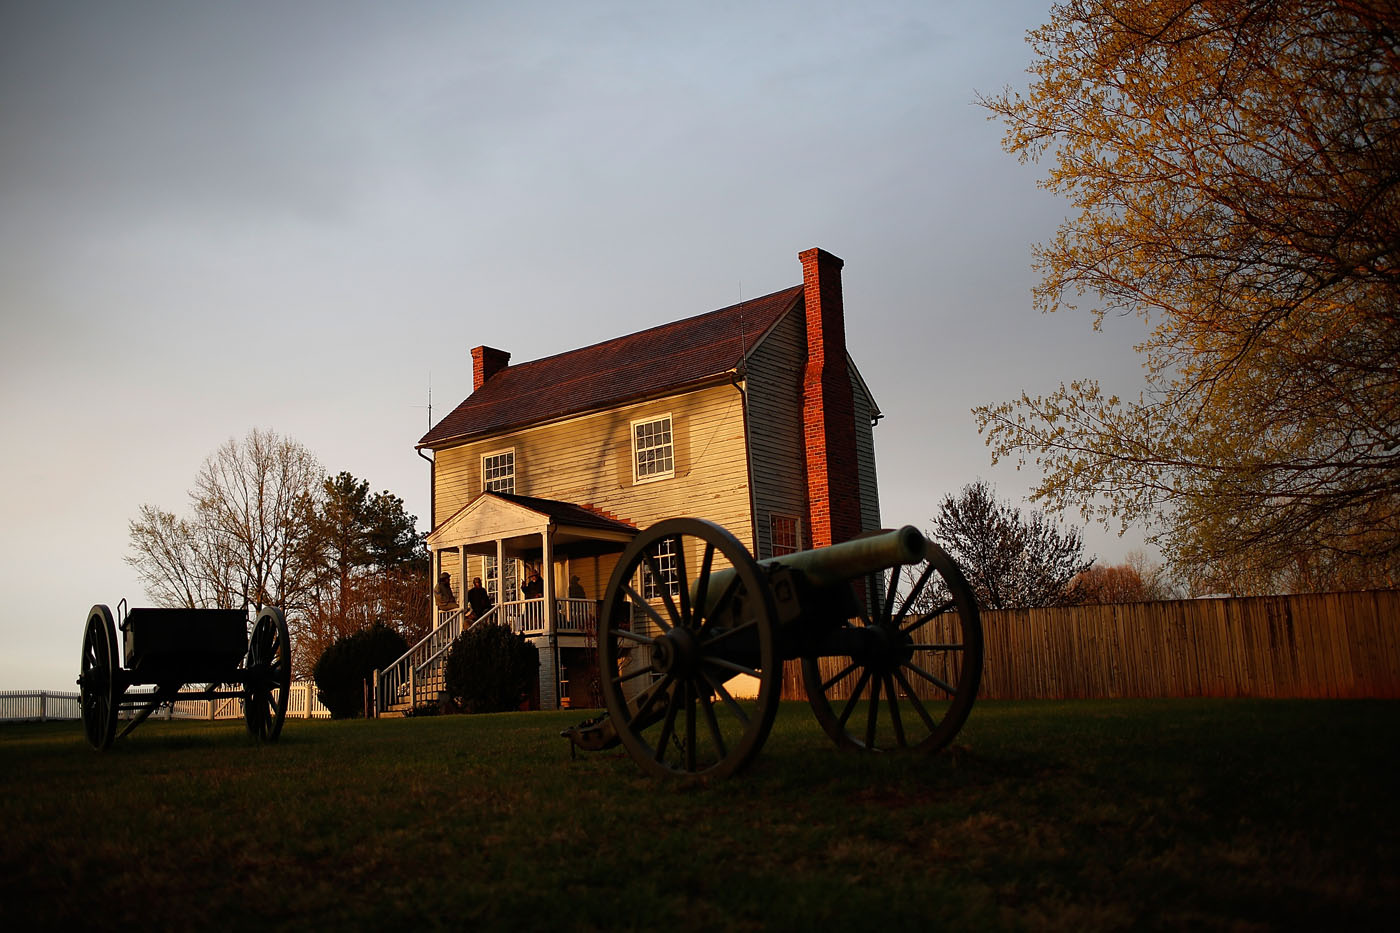 the road to appomattox a synopsis about the end of the american civil war Appomattox court house battle summary: the battle of appomattox courthouse  was the army of  grant replied, again suggesting surrender to end the  bloodshed  initially, gordon had success in clearing cavalry from the road, but  union infantry moved in and he  america's civil war: images of peace at  appomattox.